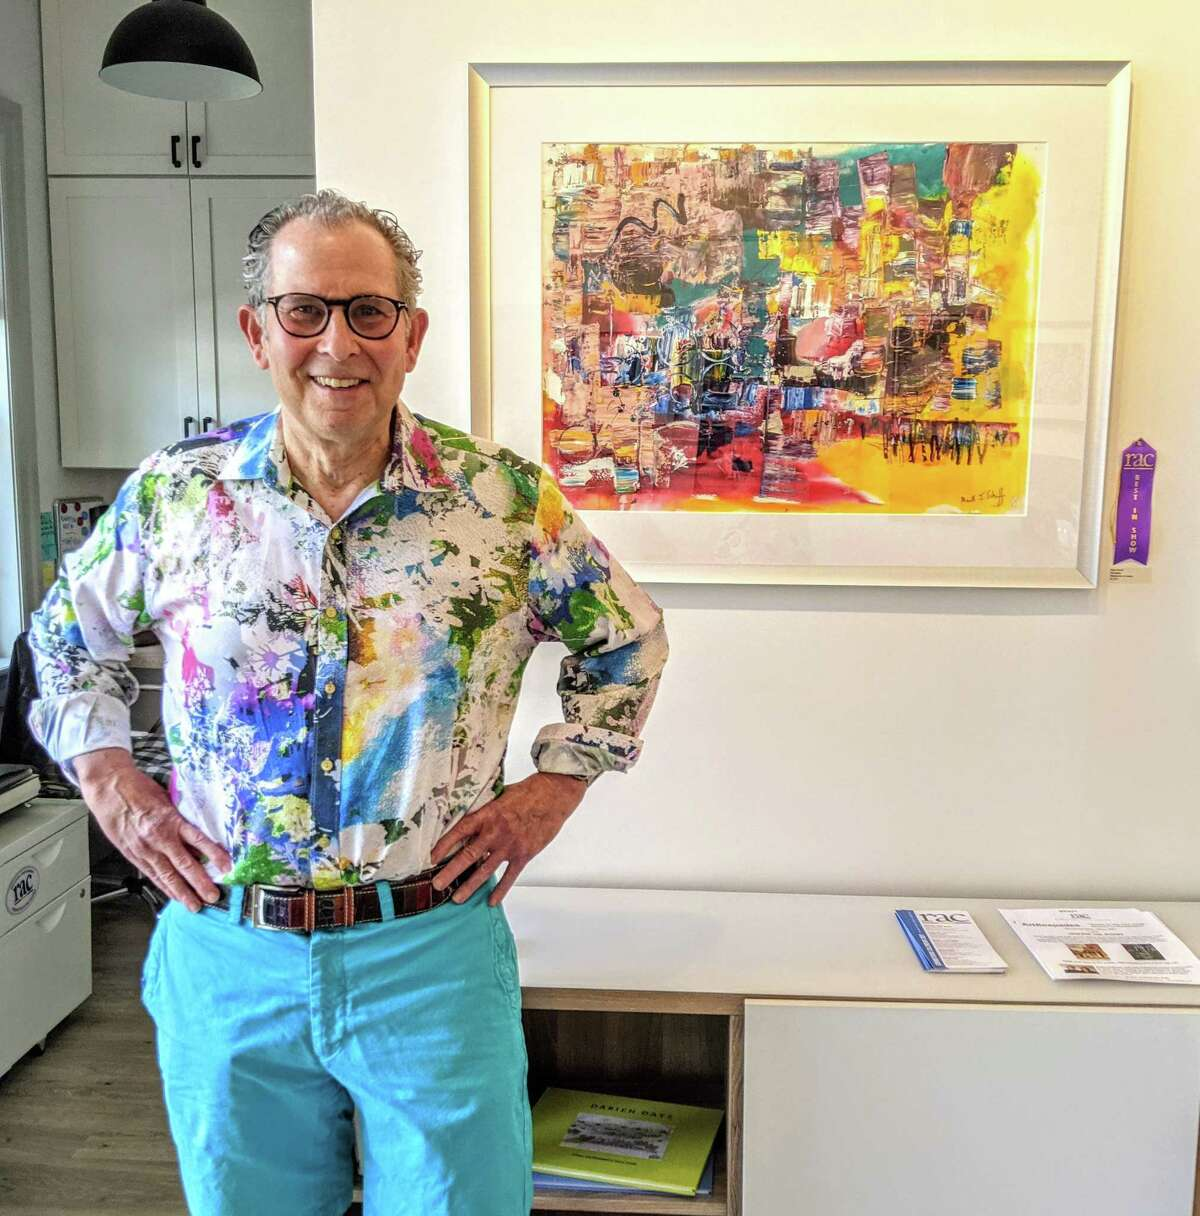 """Mark Schiff poses with his painting """"Shanghai,"""" which won Best in Show at the Rowayton Arts Center's juried show """"In the City."""" The show is on display through June 20."""